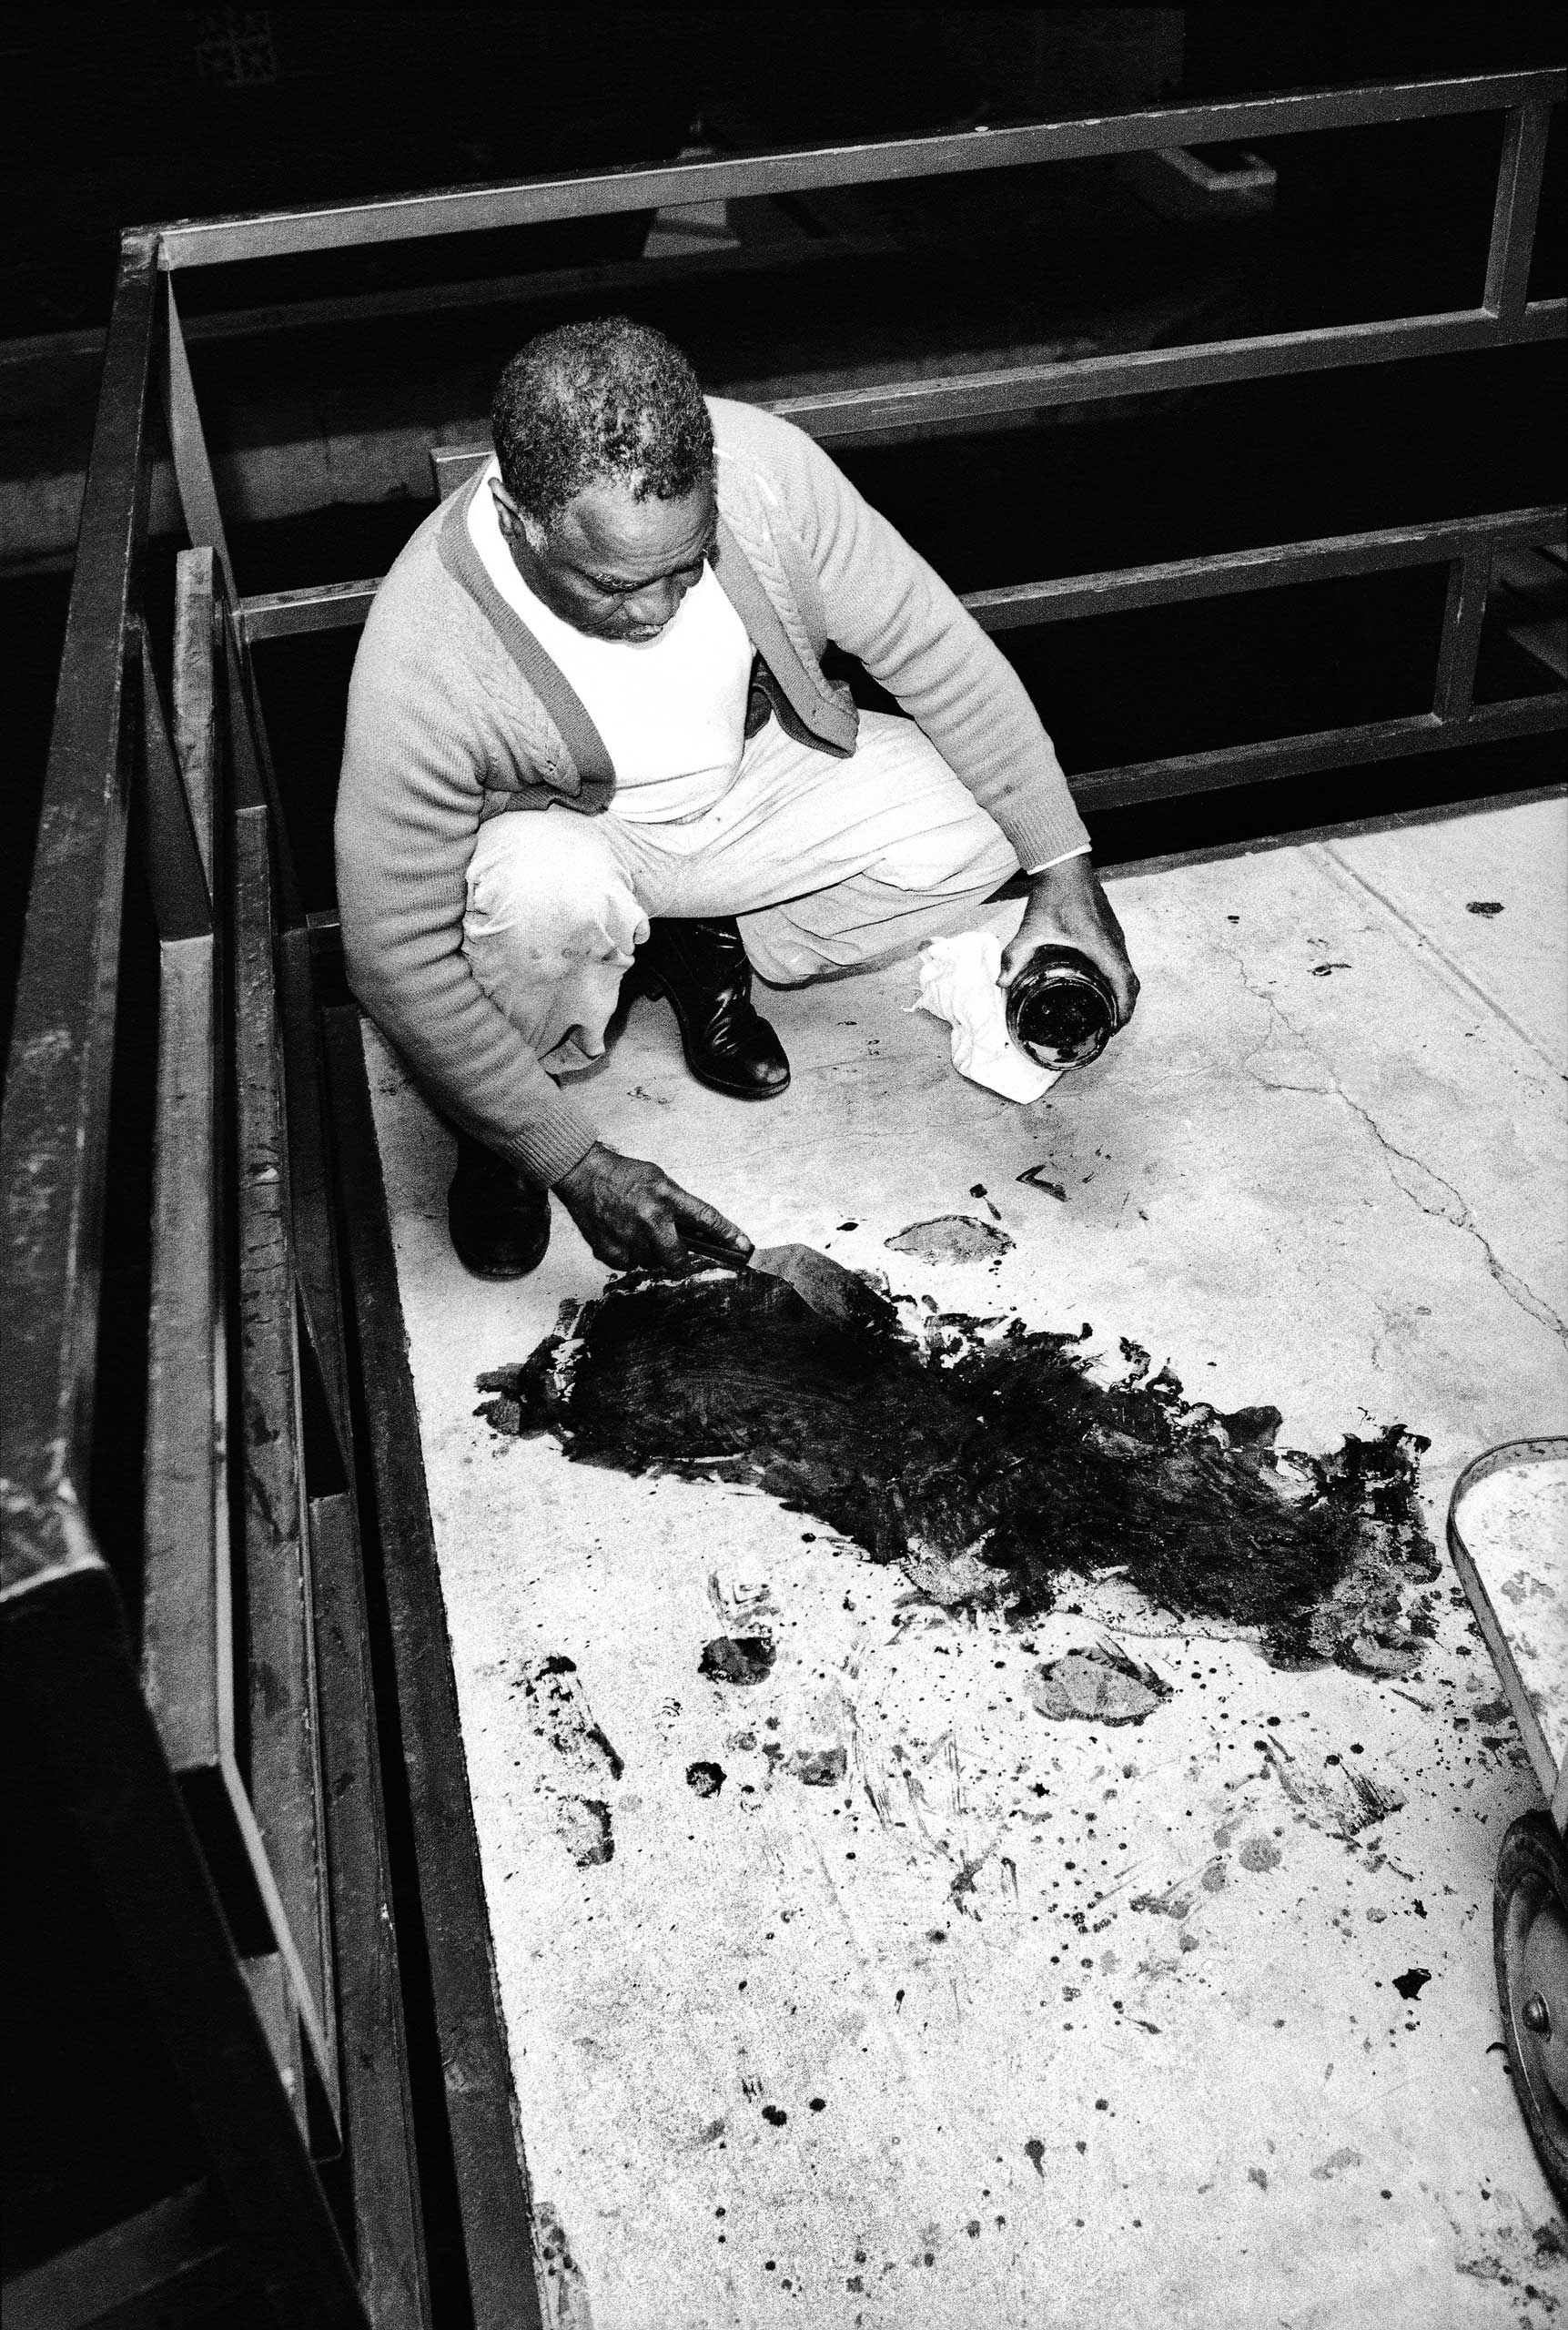 """<b>Not published in LIFE.</b> Theatrice Bailey attempts to clean blood from the balcony, hours after the 6 PM shooting of Dr. King. """"I don't know if there were official people around taking notes and pictures and things like that,"""" Groskinsky told LIFE.com. """"Nobody was there when we were there. But the fact that the blood was still on the floor, and this man was actually putting it in a jar ... well, when you see a picture like that, God, it feels invasive."""""""